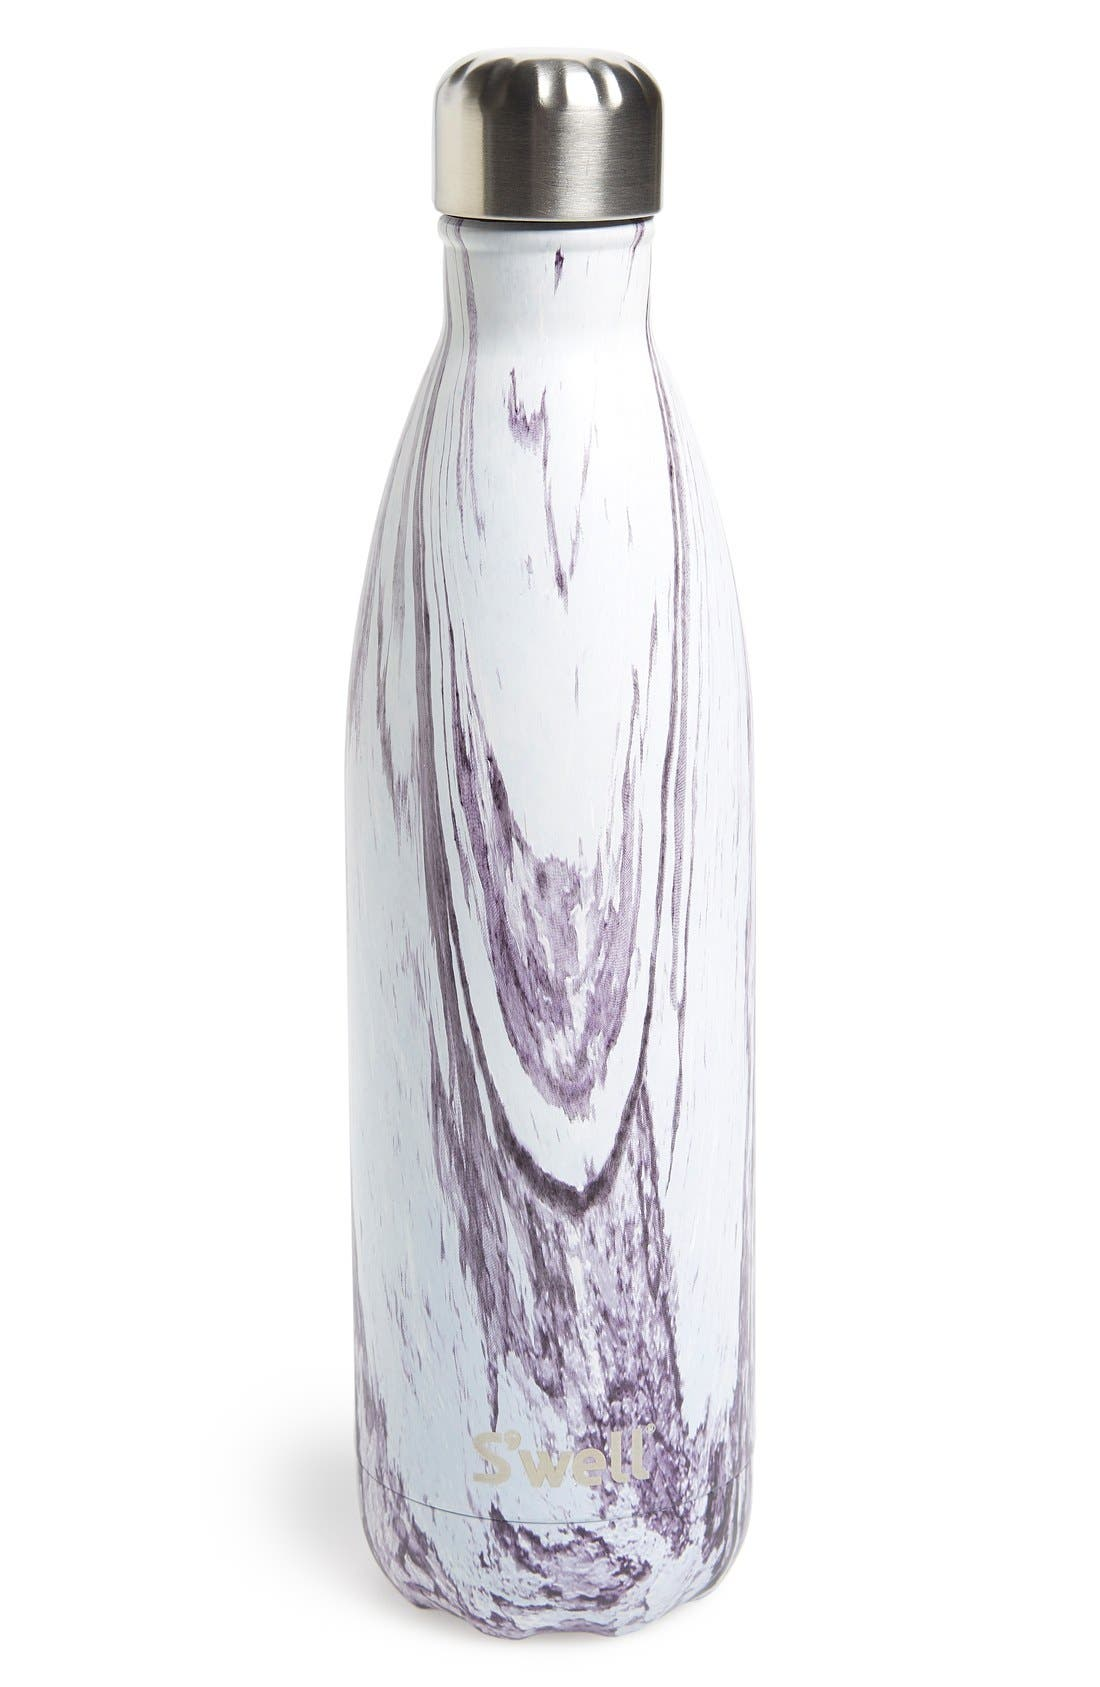 S'well 'The Wood Collection - Lily Wood' Insulated Stainless Steel Water Bottle